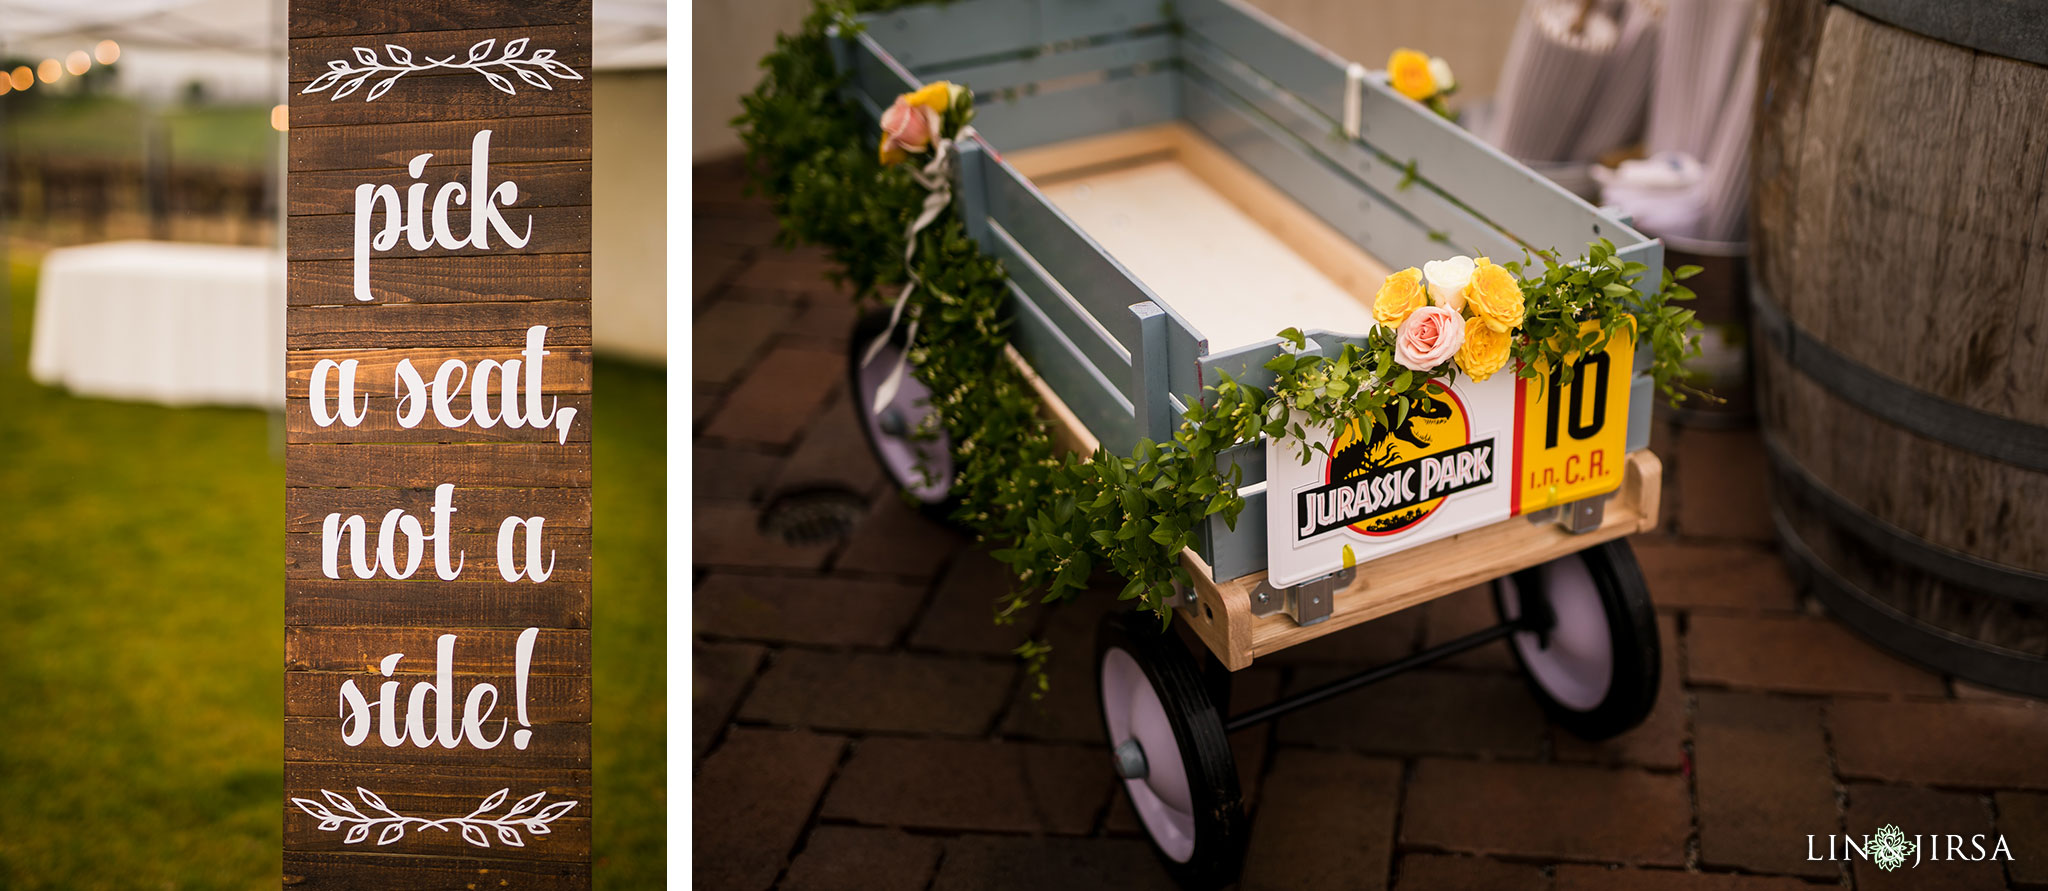 19 leoness cellars temecula jurassic park wedding ceremony photography